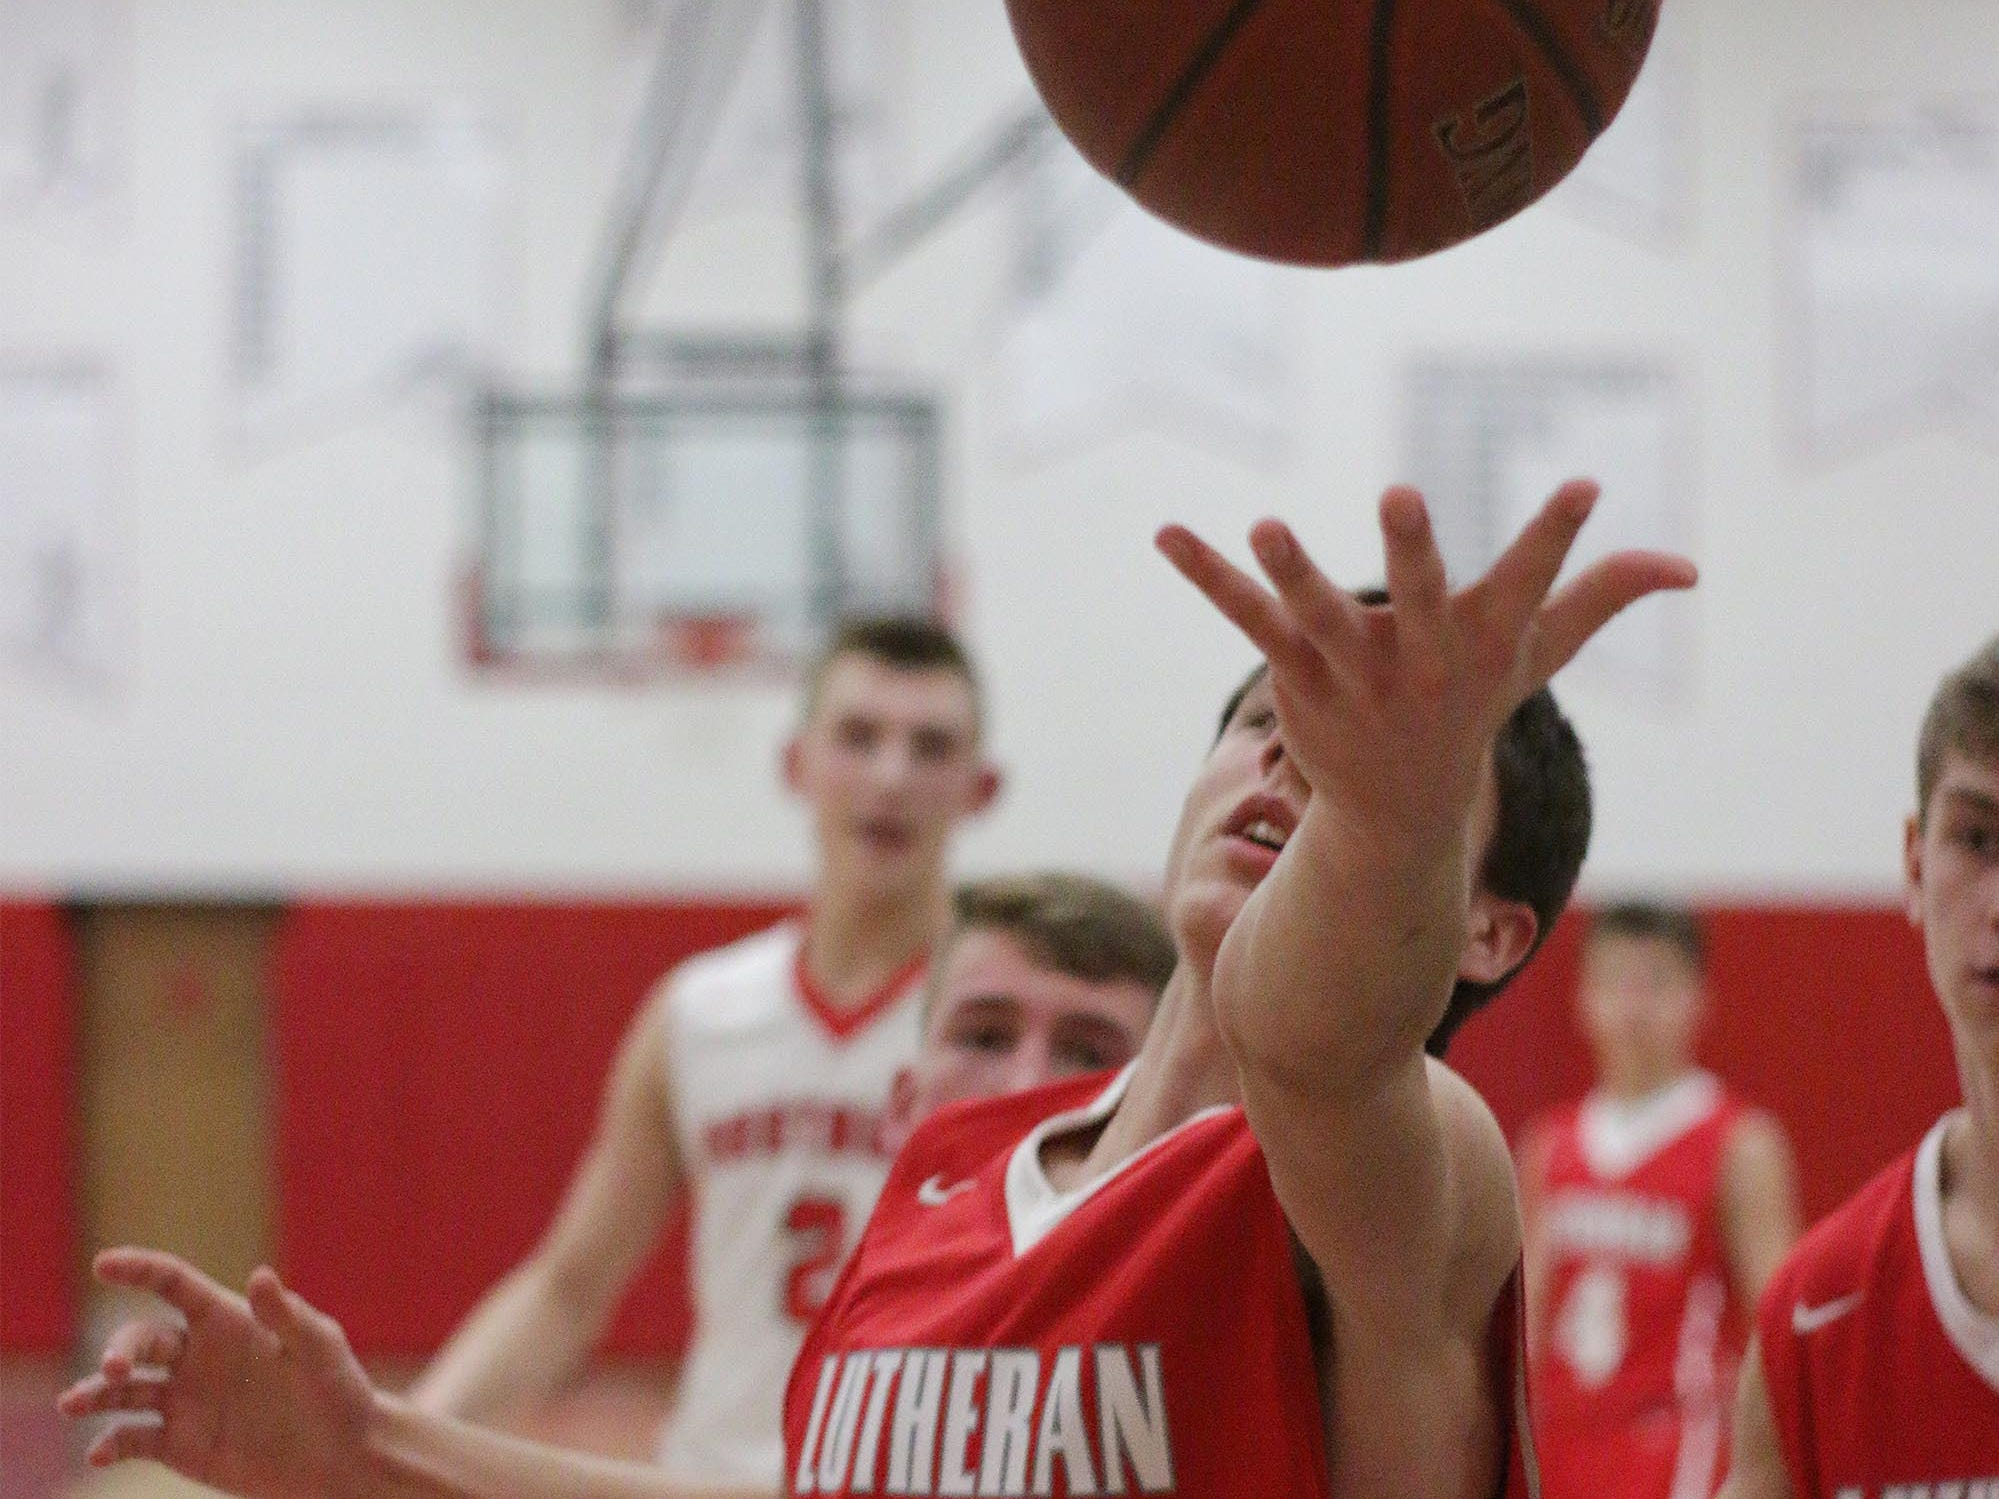 Manitowoc Lutheran's Simeon Poehlman (24) reaches for a loose ball during action with Oostburg, Friday, February 8, 2019, in Oostburg, Wis. Gary C. Klein/USA TODAY NETWORK-Wisconsin